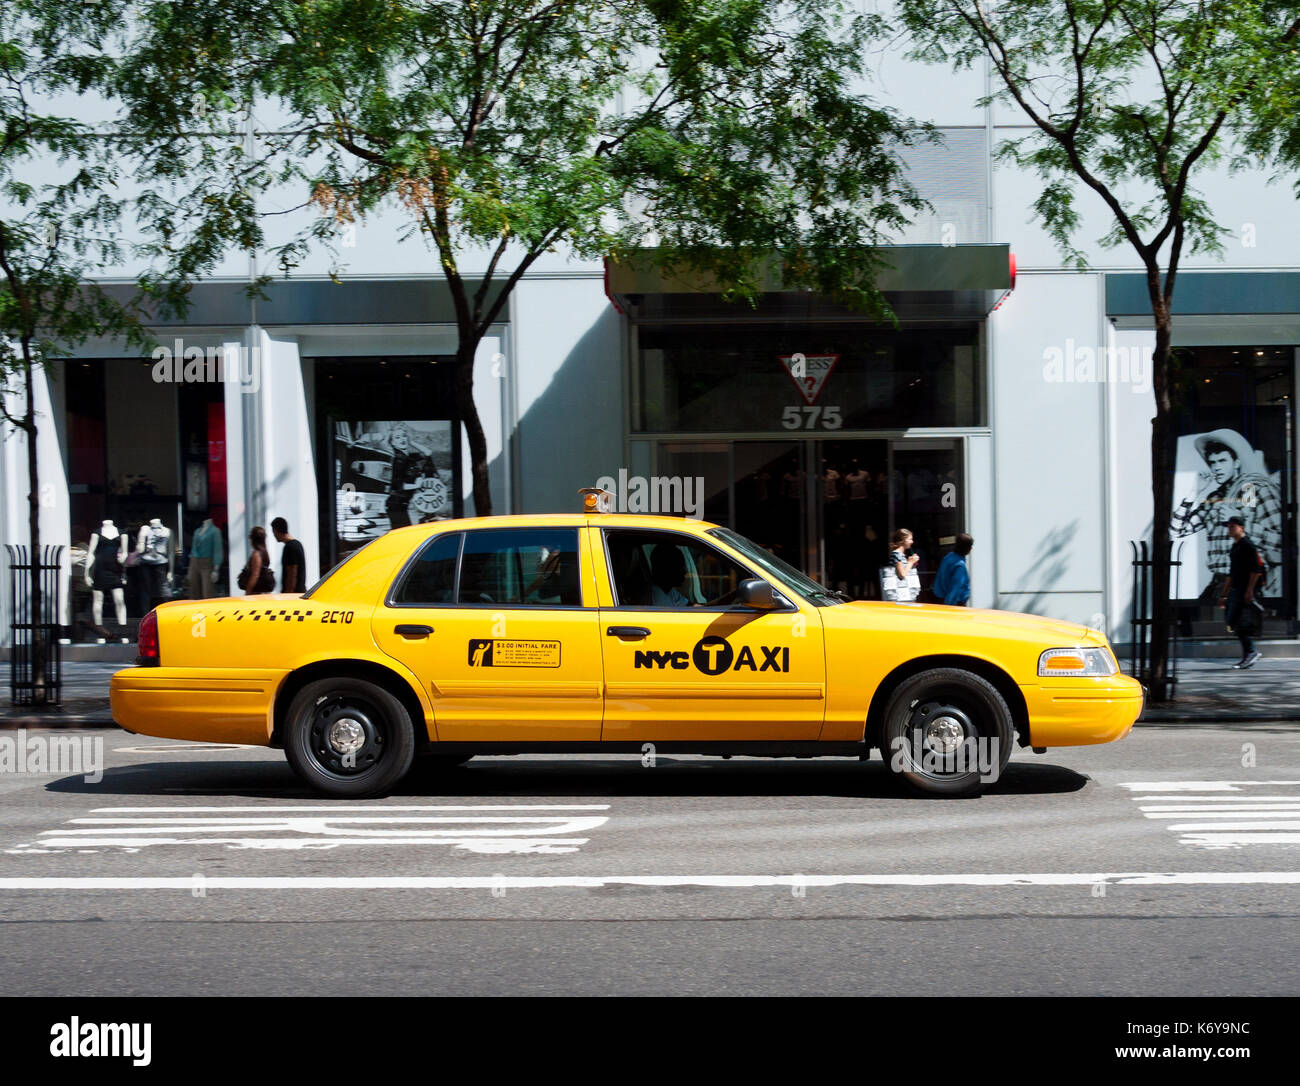 Yellow Taxi Cab Photo Stock